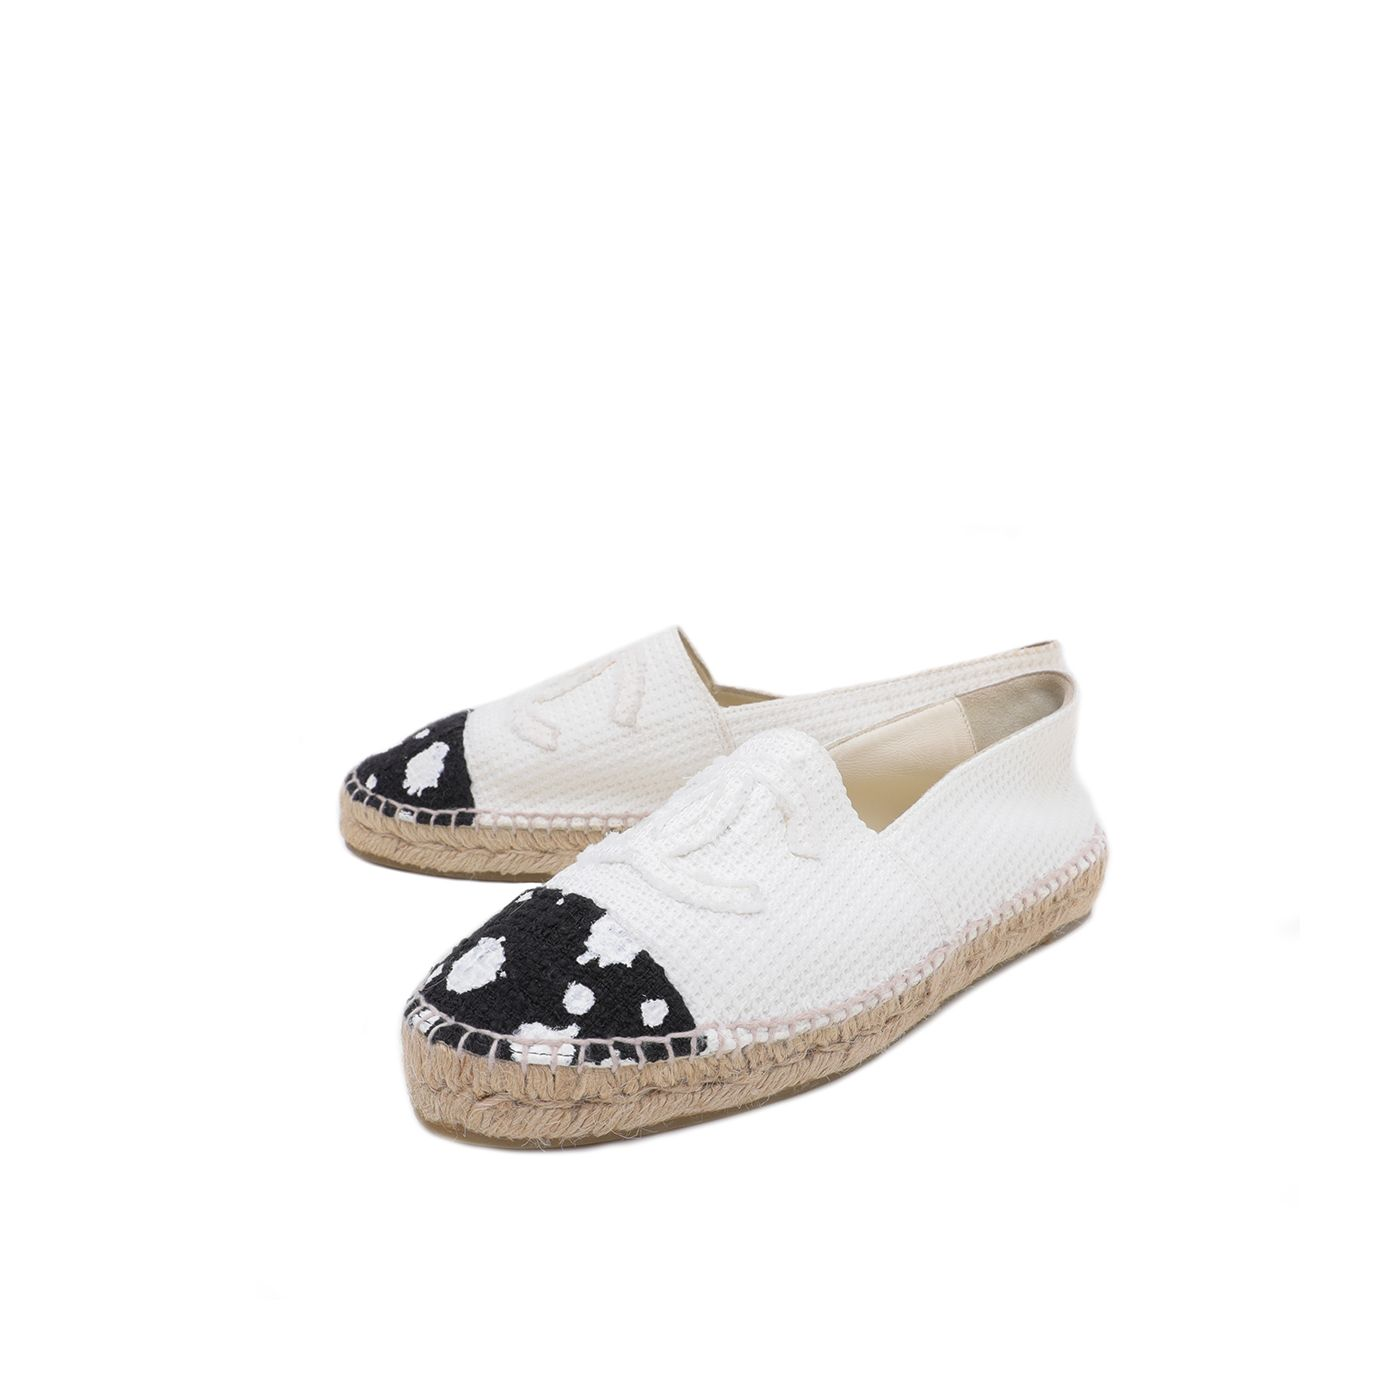 Chanel Bicolor CC Monochrome Paint Espadrille 41